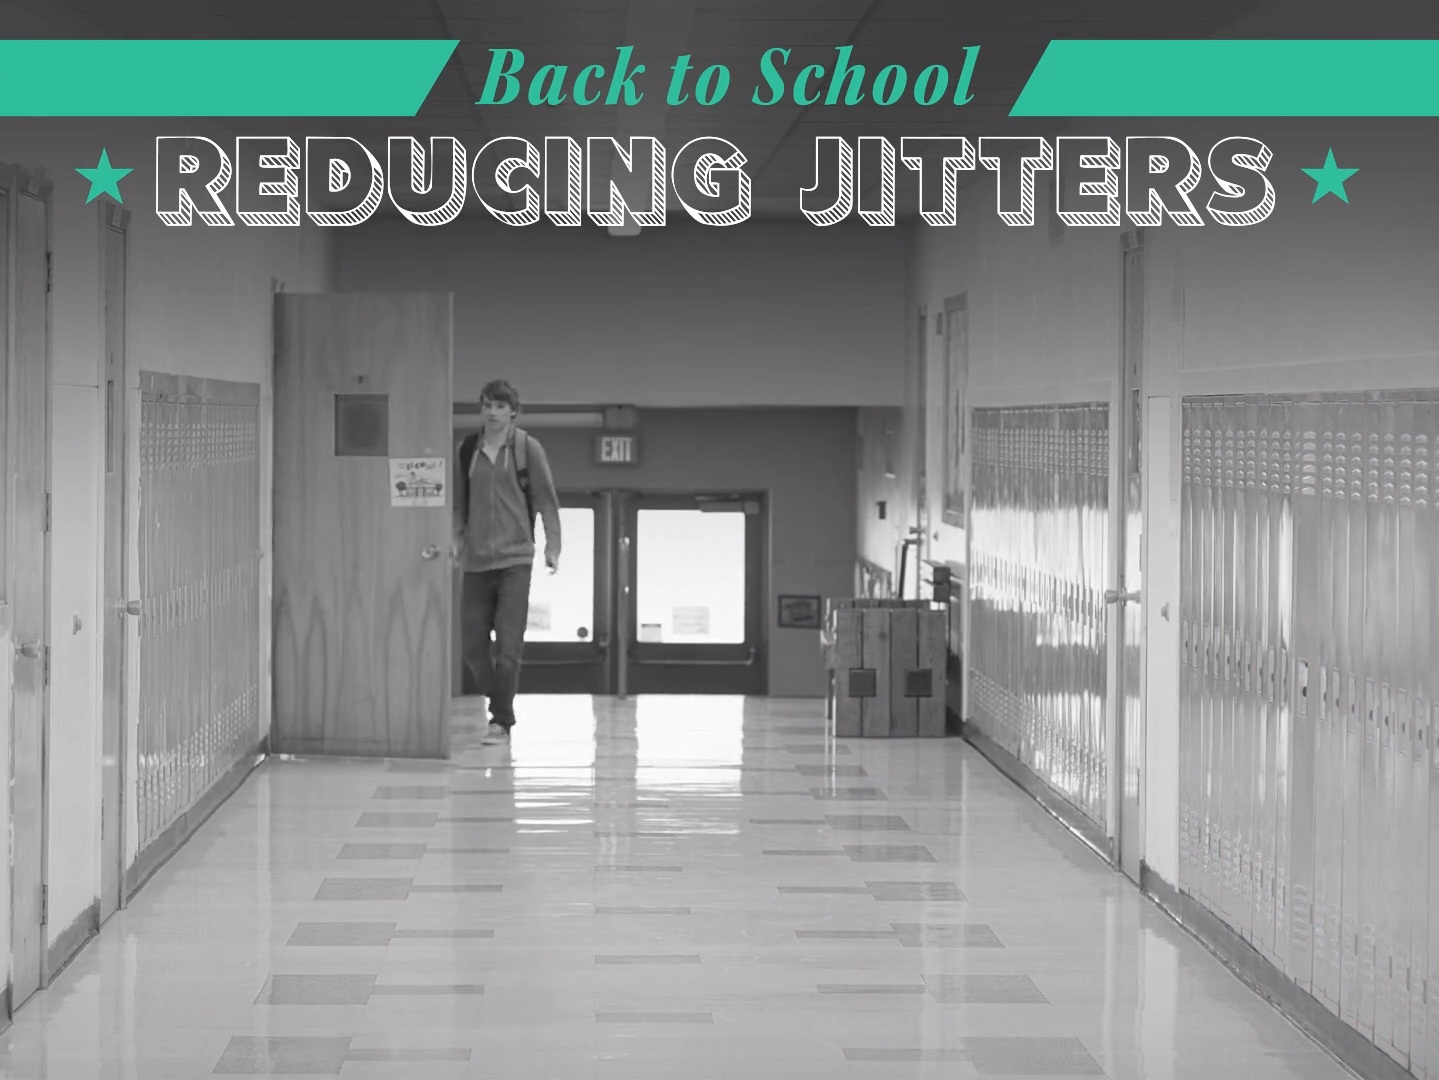 Managing Back-to-School Jitters - There's a lot to prepare for at the beginning of each school year, from making sure your kids have all the supplies they need, to figuring out where their classroom is.